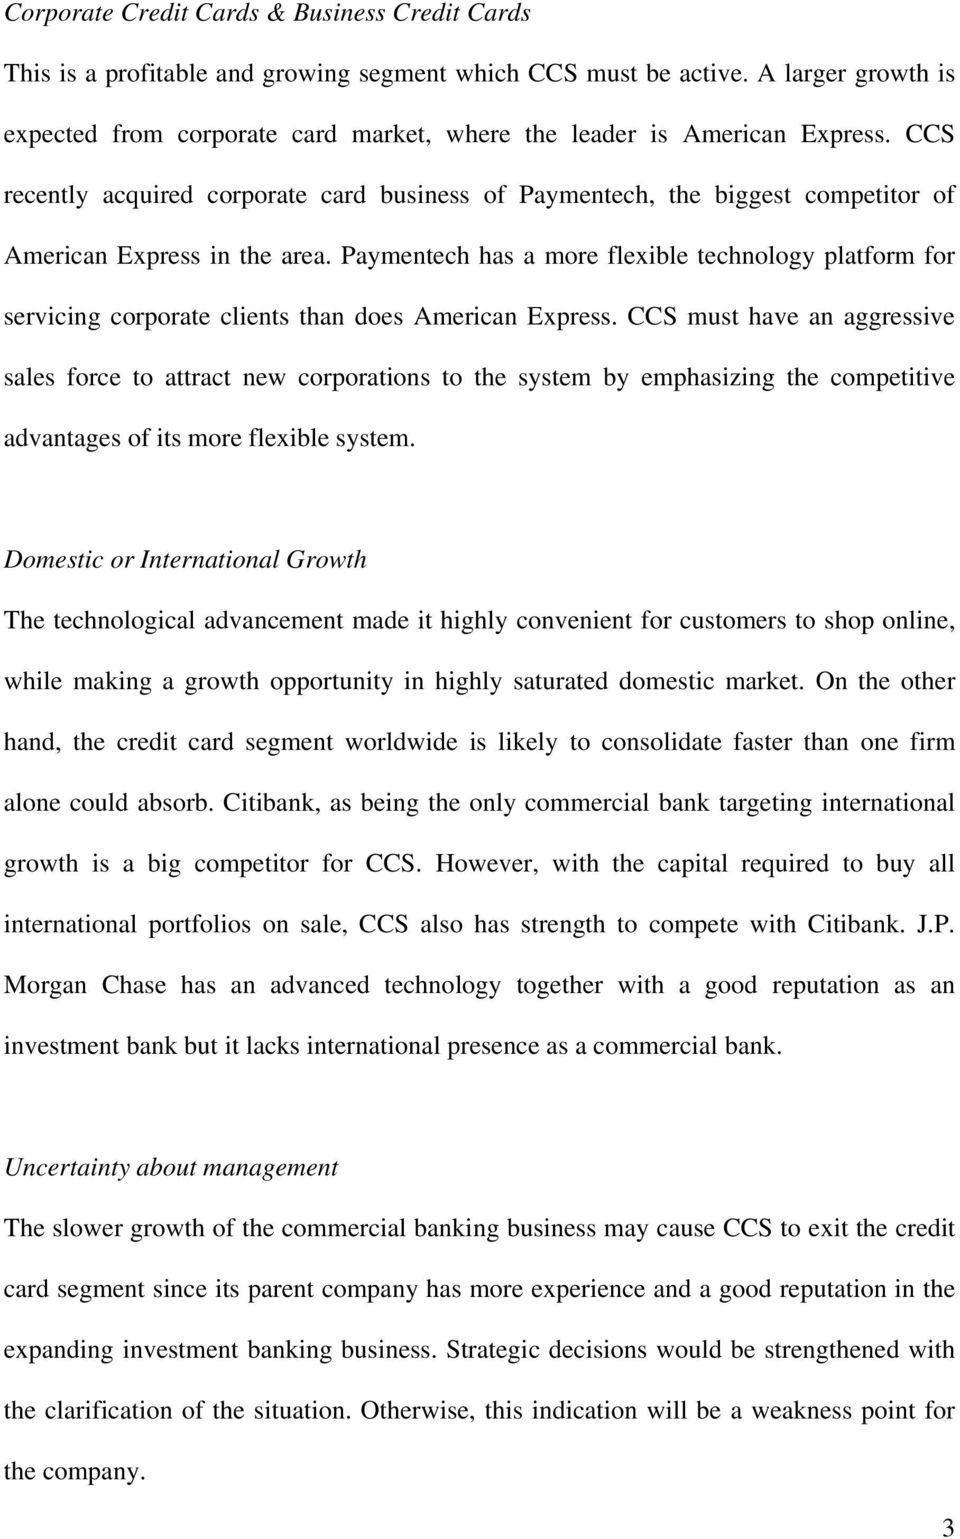 CCS recently acquired corporate card business of Paymentech, the biggest competitor of American Express in the area.